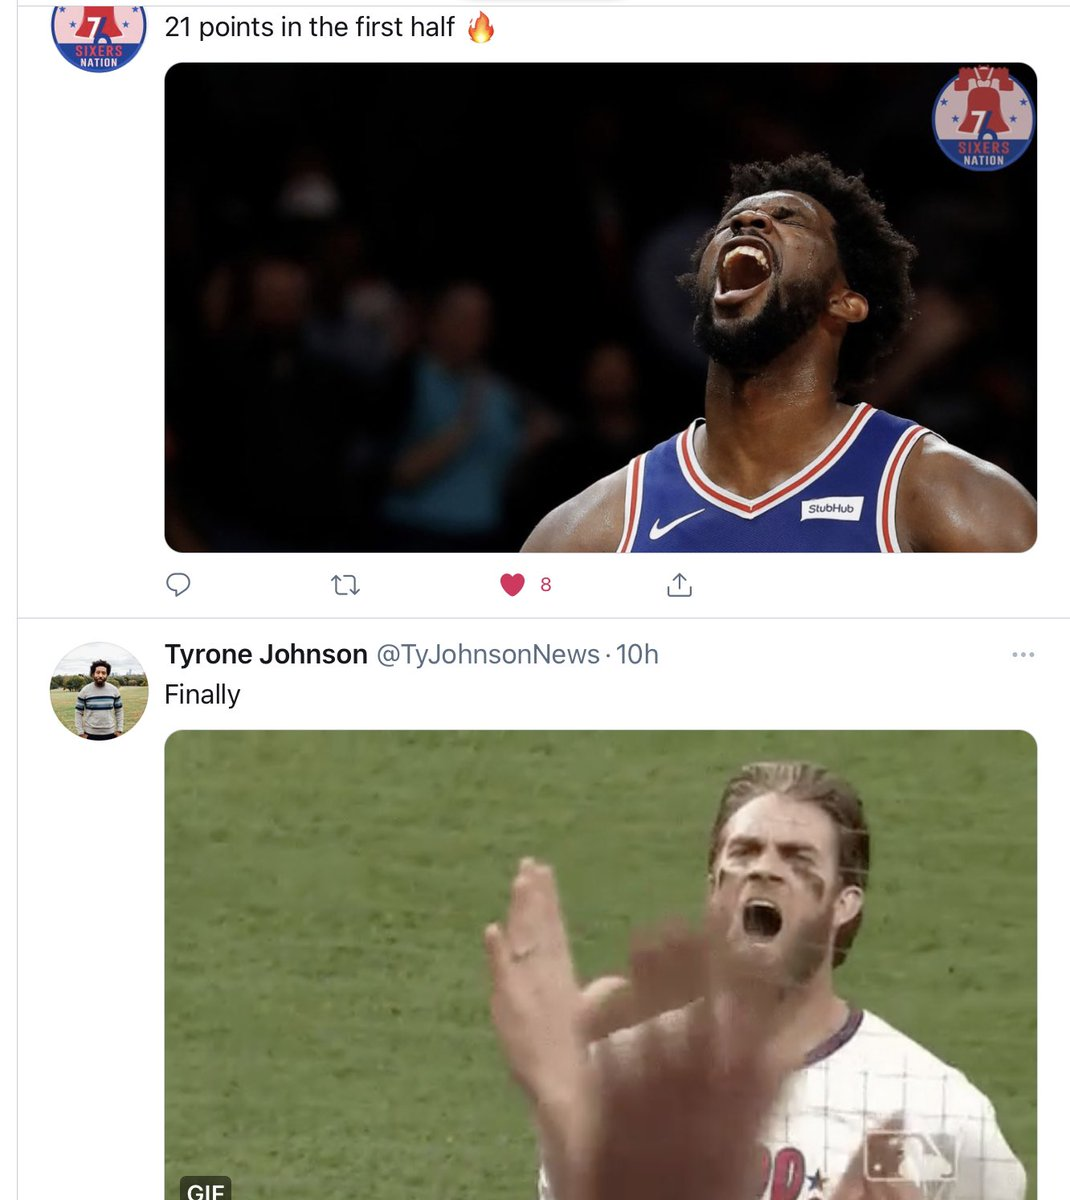 Loving my timeline this morning! @sixers @Phillies @TyJohnsonNews  #sixers #Phillies https://t.co/CMUIBIuUnV